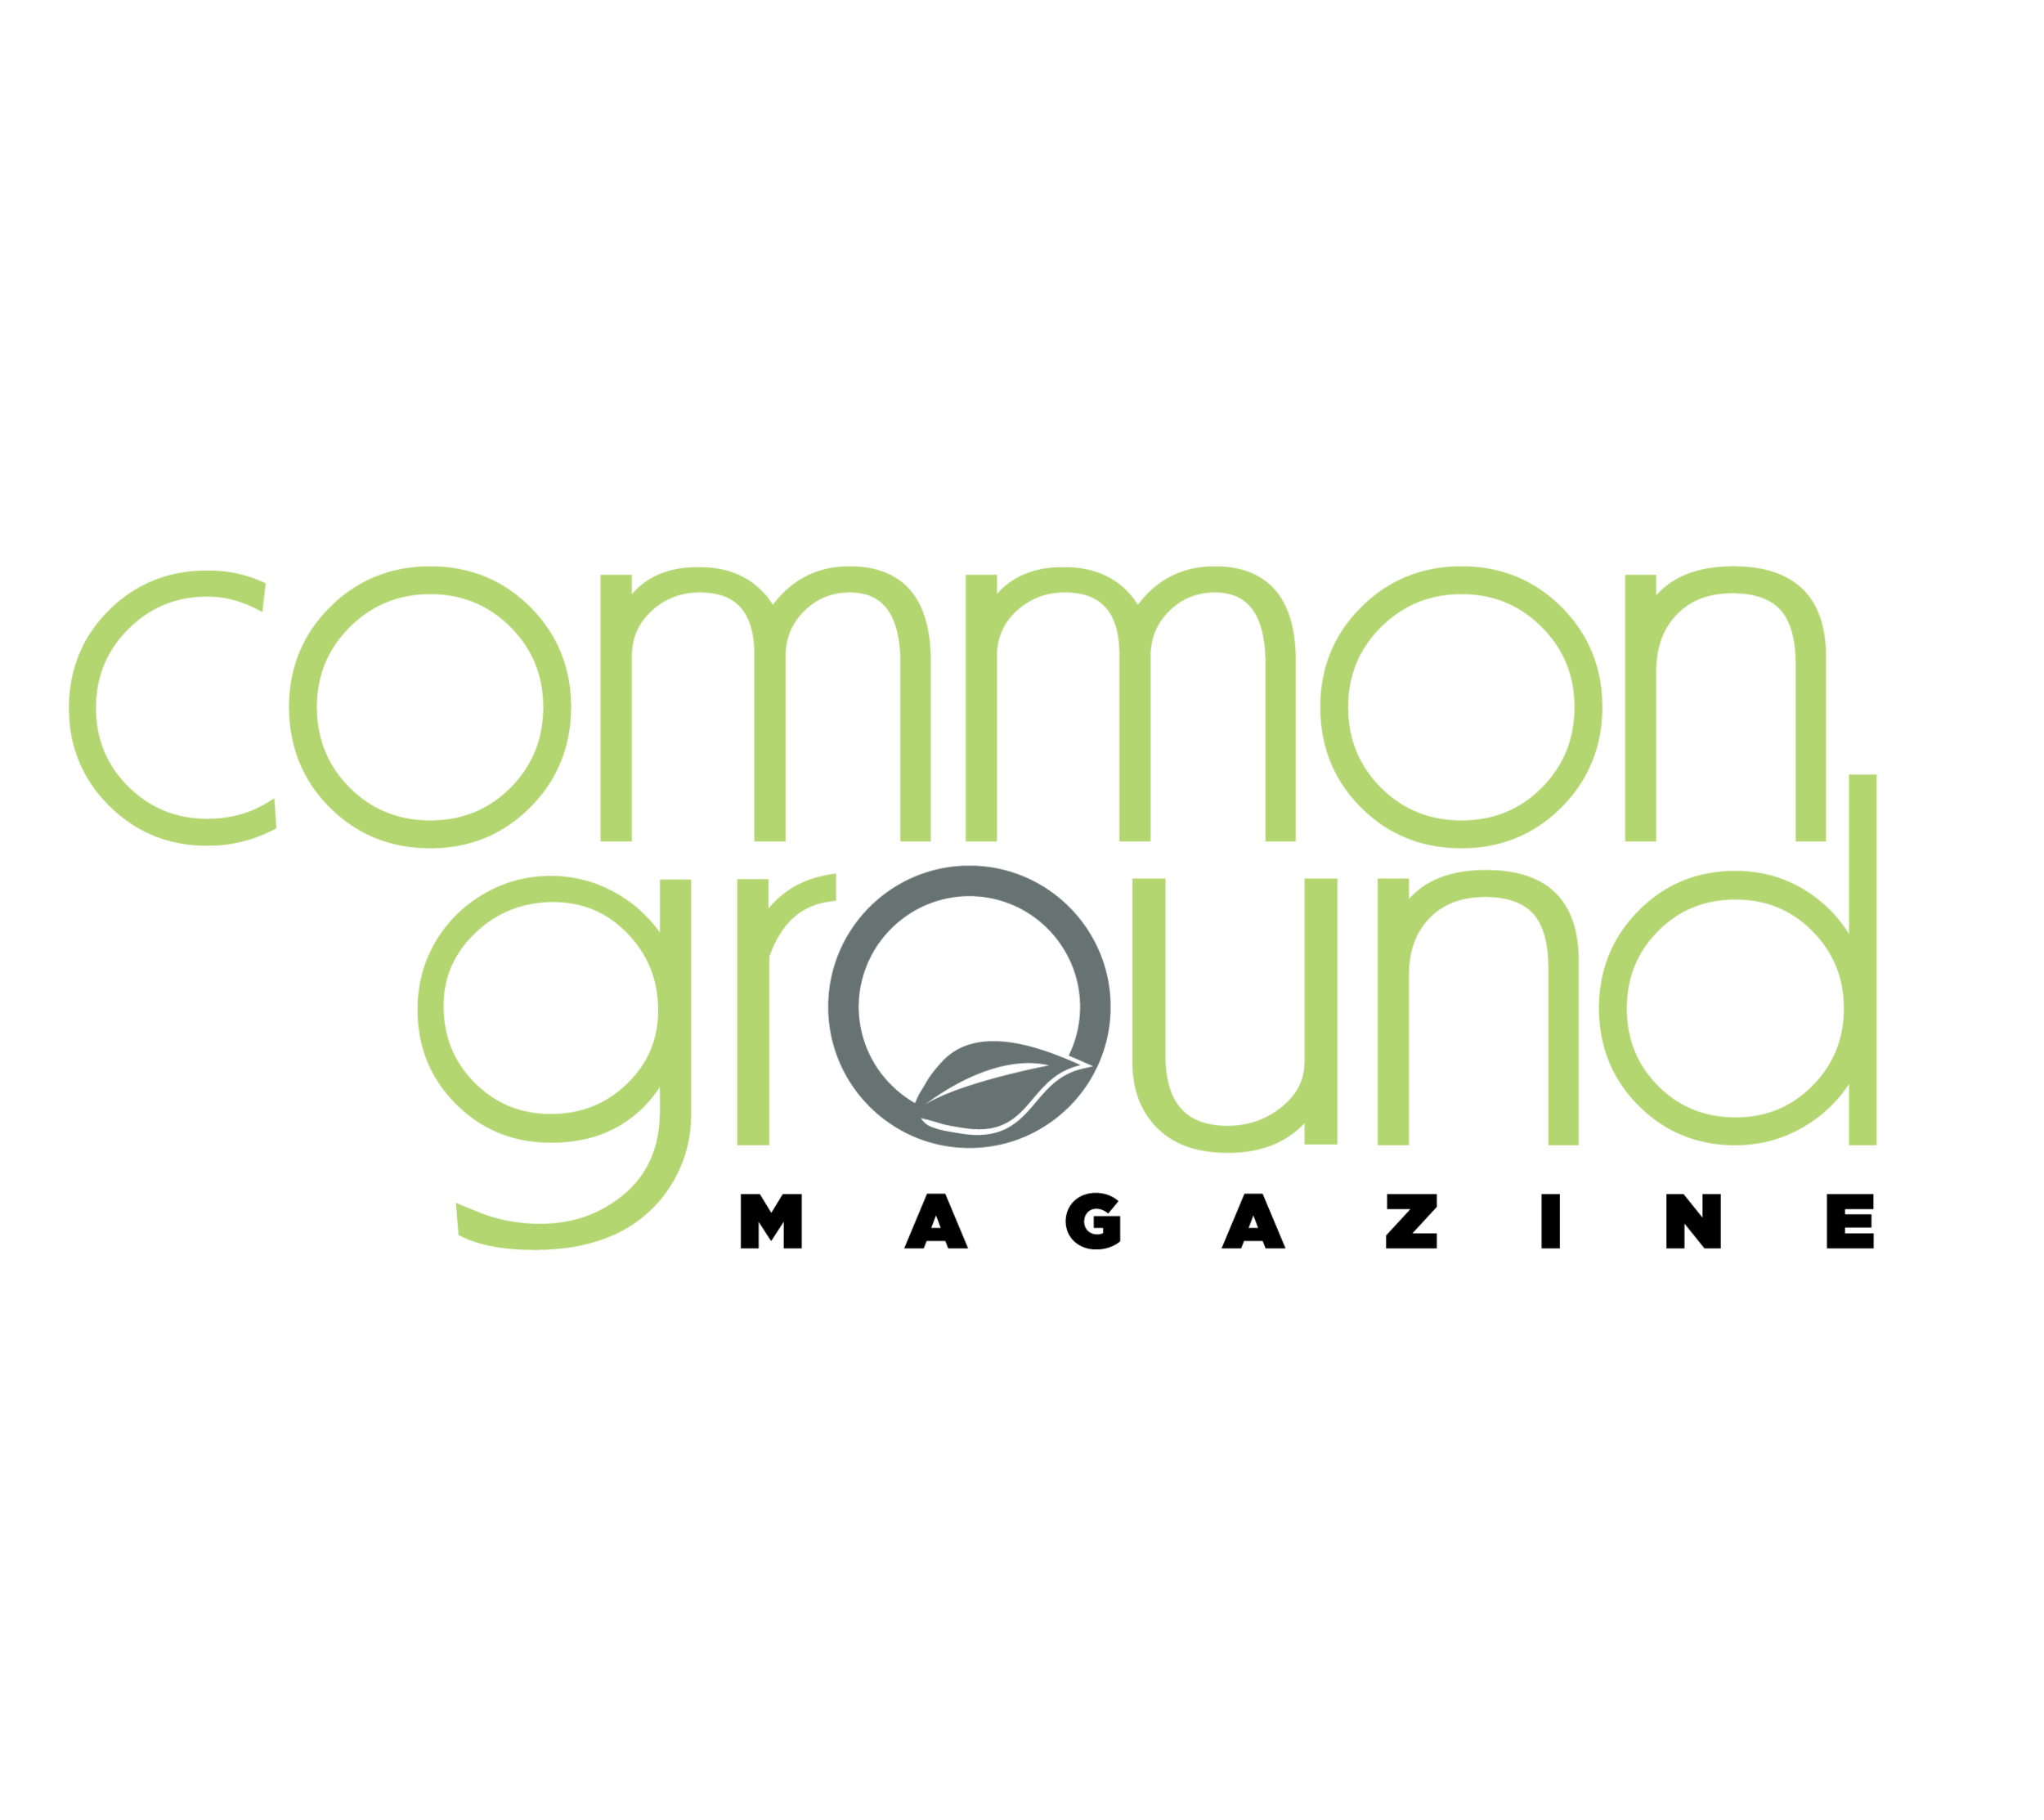 - COMMON GROUNDCommon Ground magazine since 1974 has helped pioneer the Lifestyles of Health and Sustainability (LOHAS) and prides itself on reaching a sophisticated and strategic audience of Bay Area thought leaders.